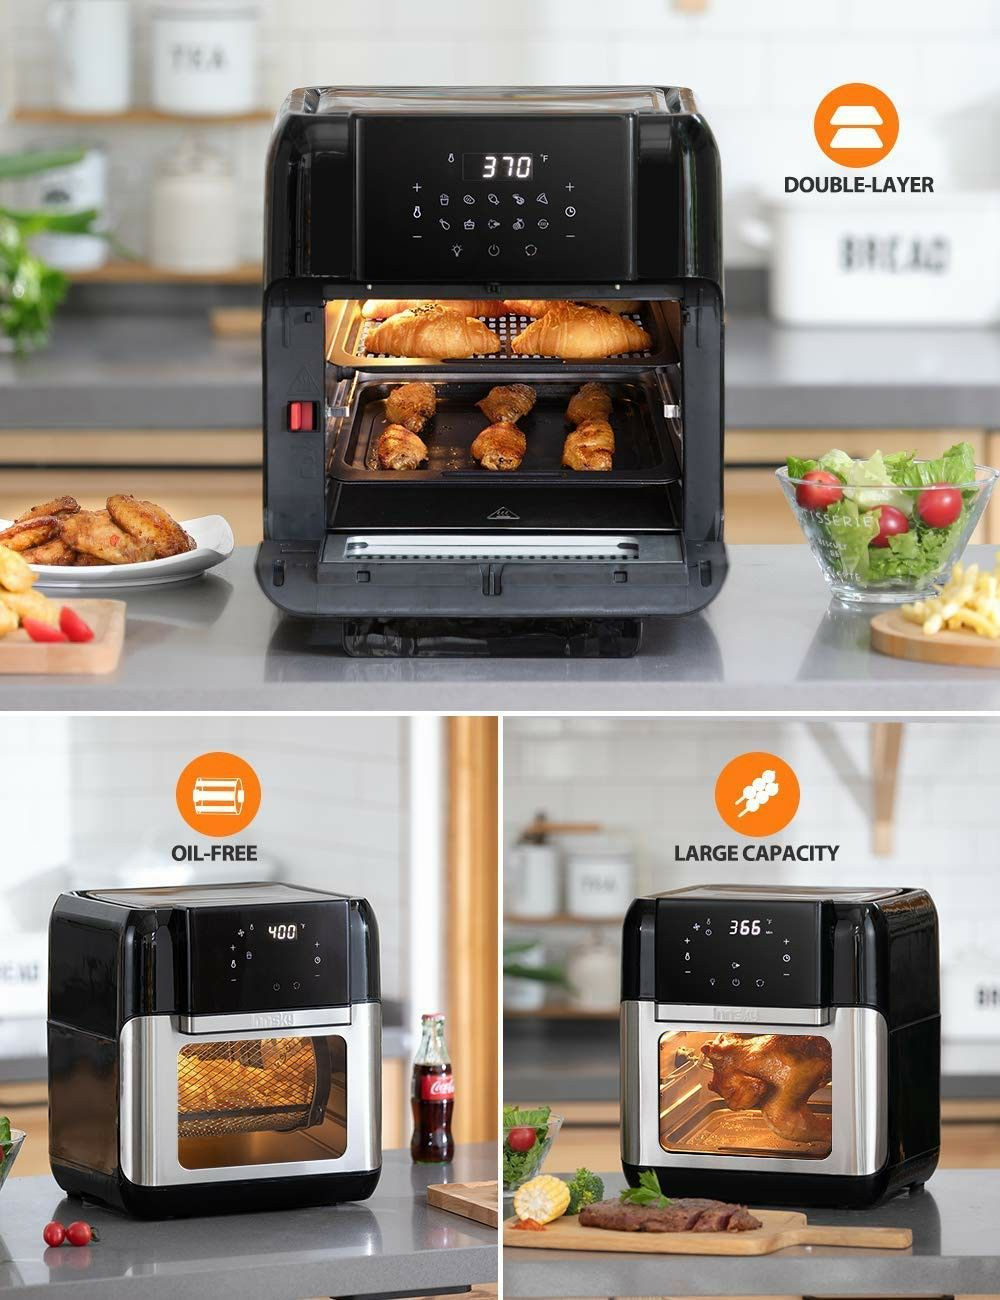 Innsky Air Fryer Oven 10 6qt 1500w Electric Air Fryer With Led